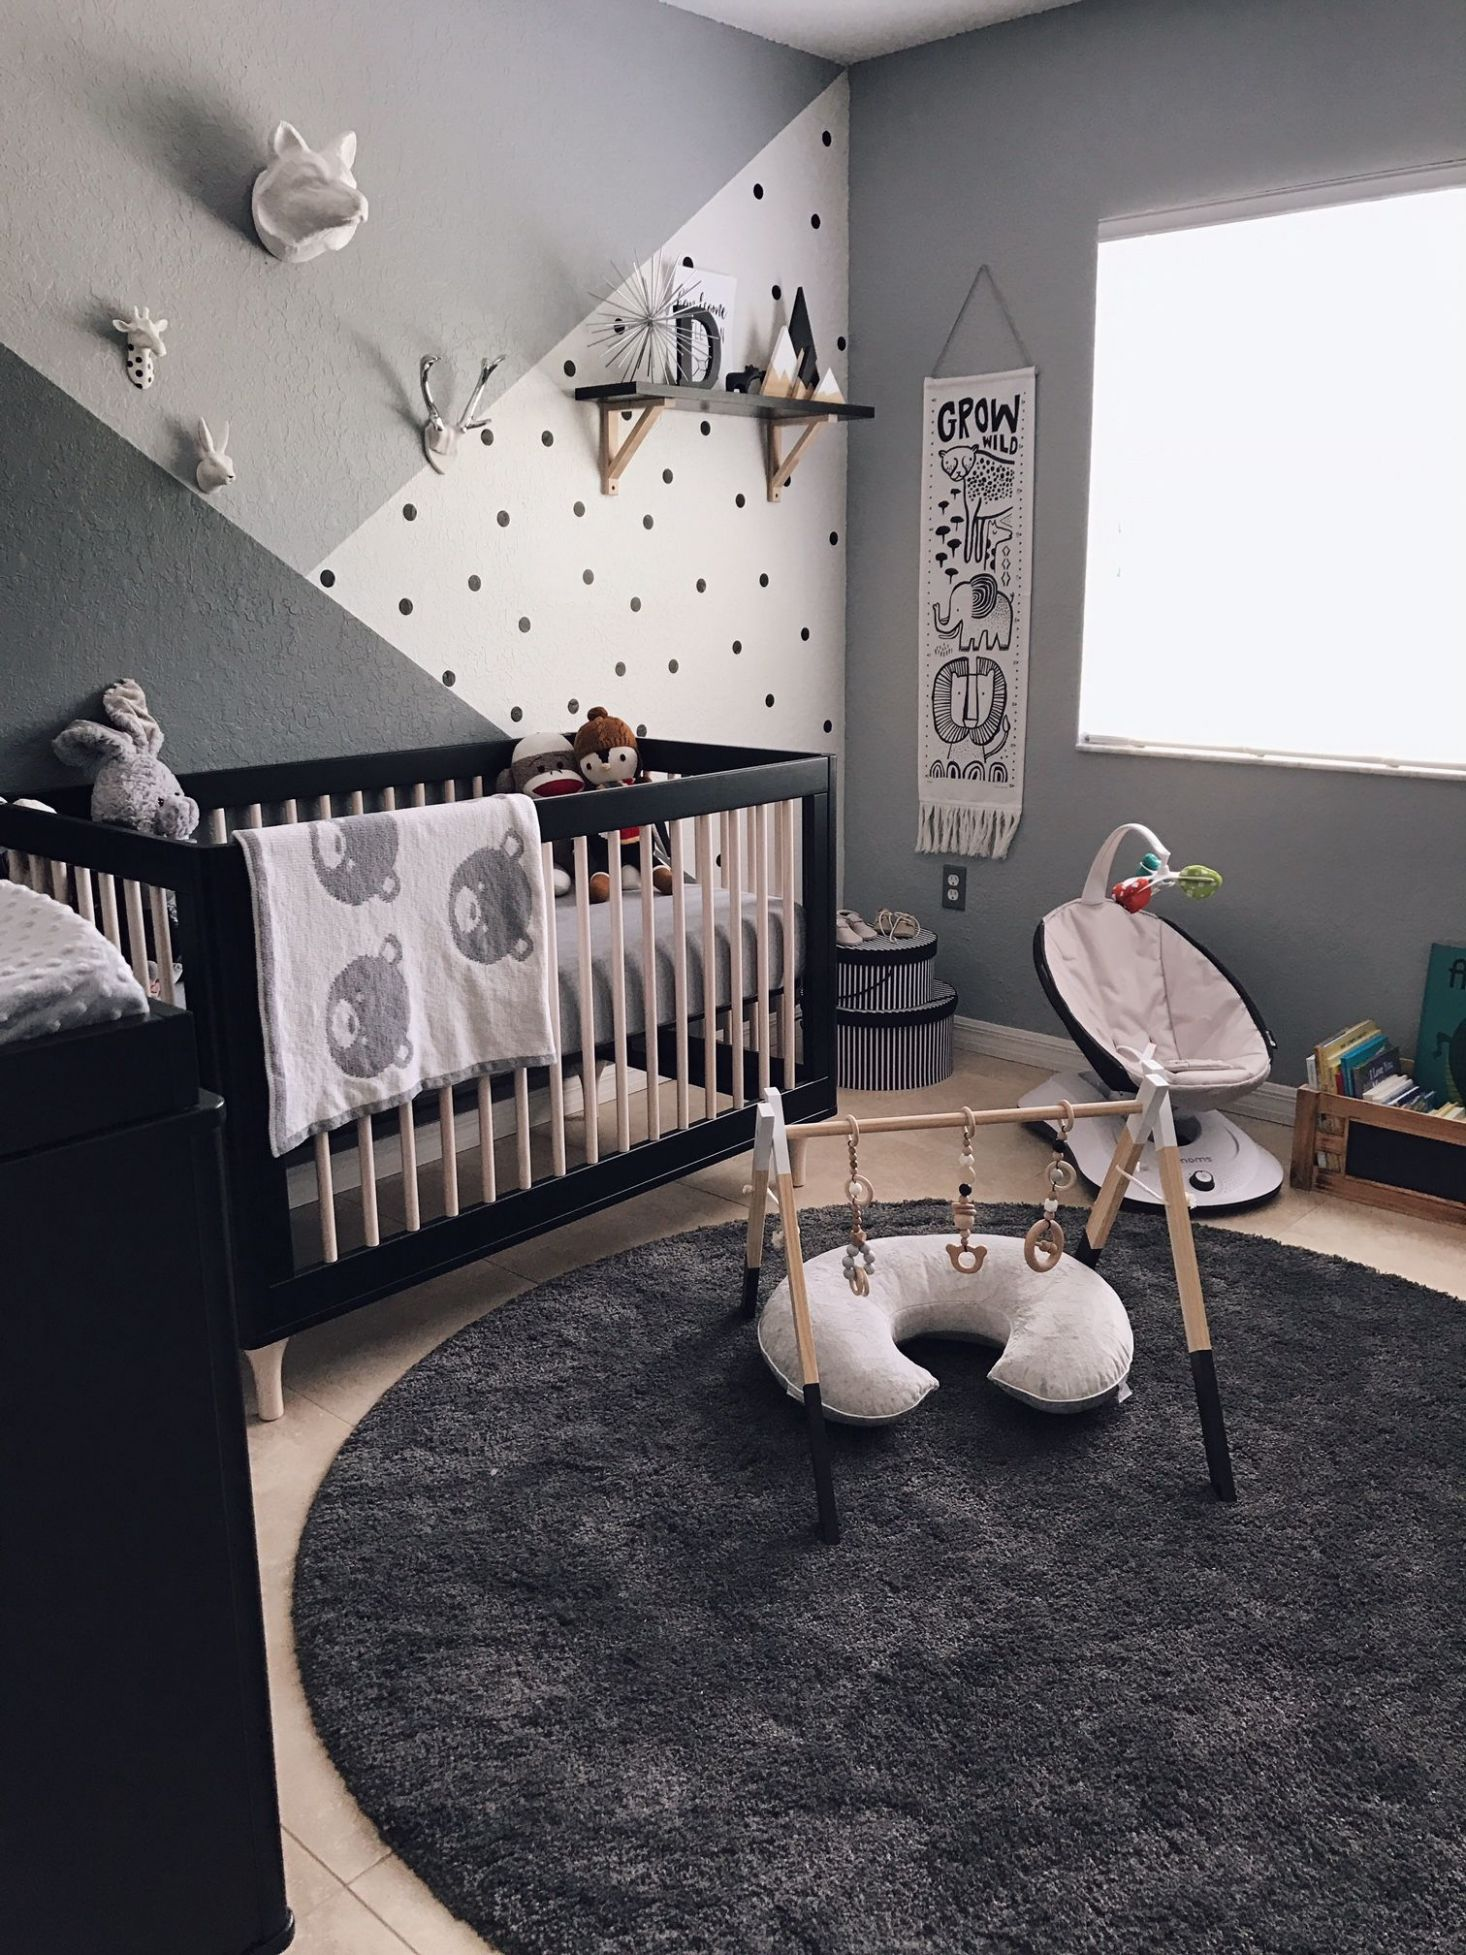 Monochrome Zoo Nursery (With images) | Baby nursery inspiration ...